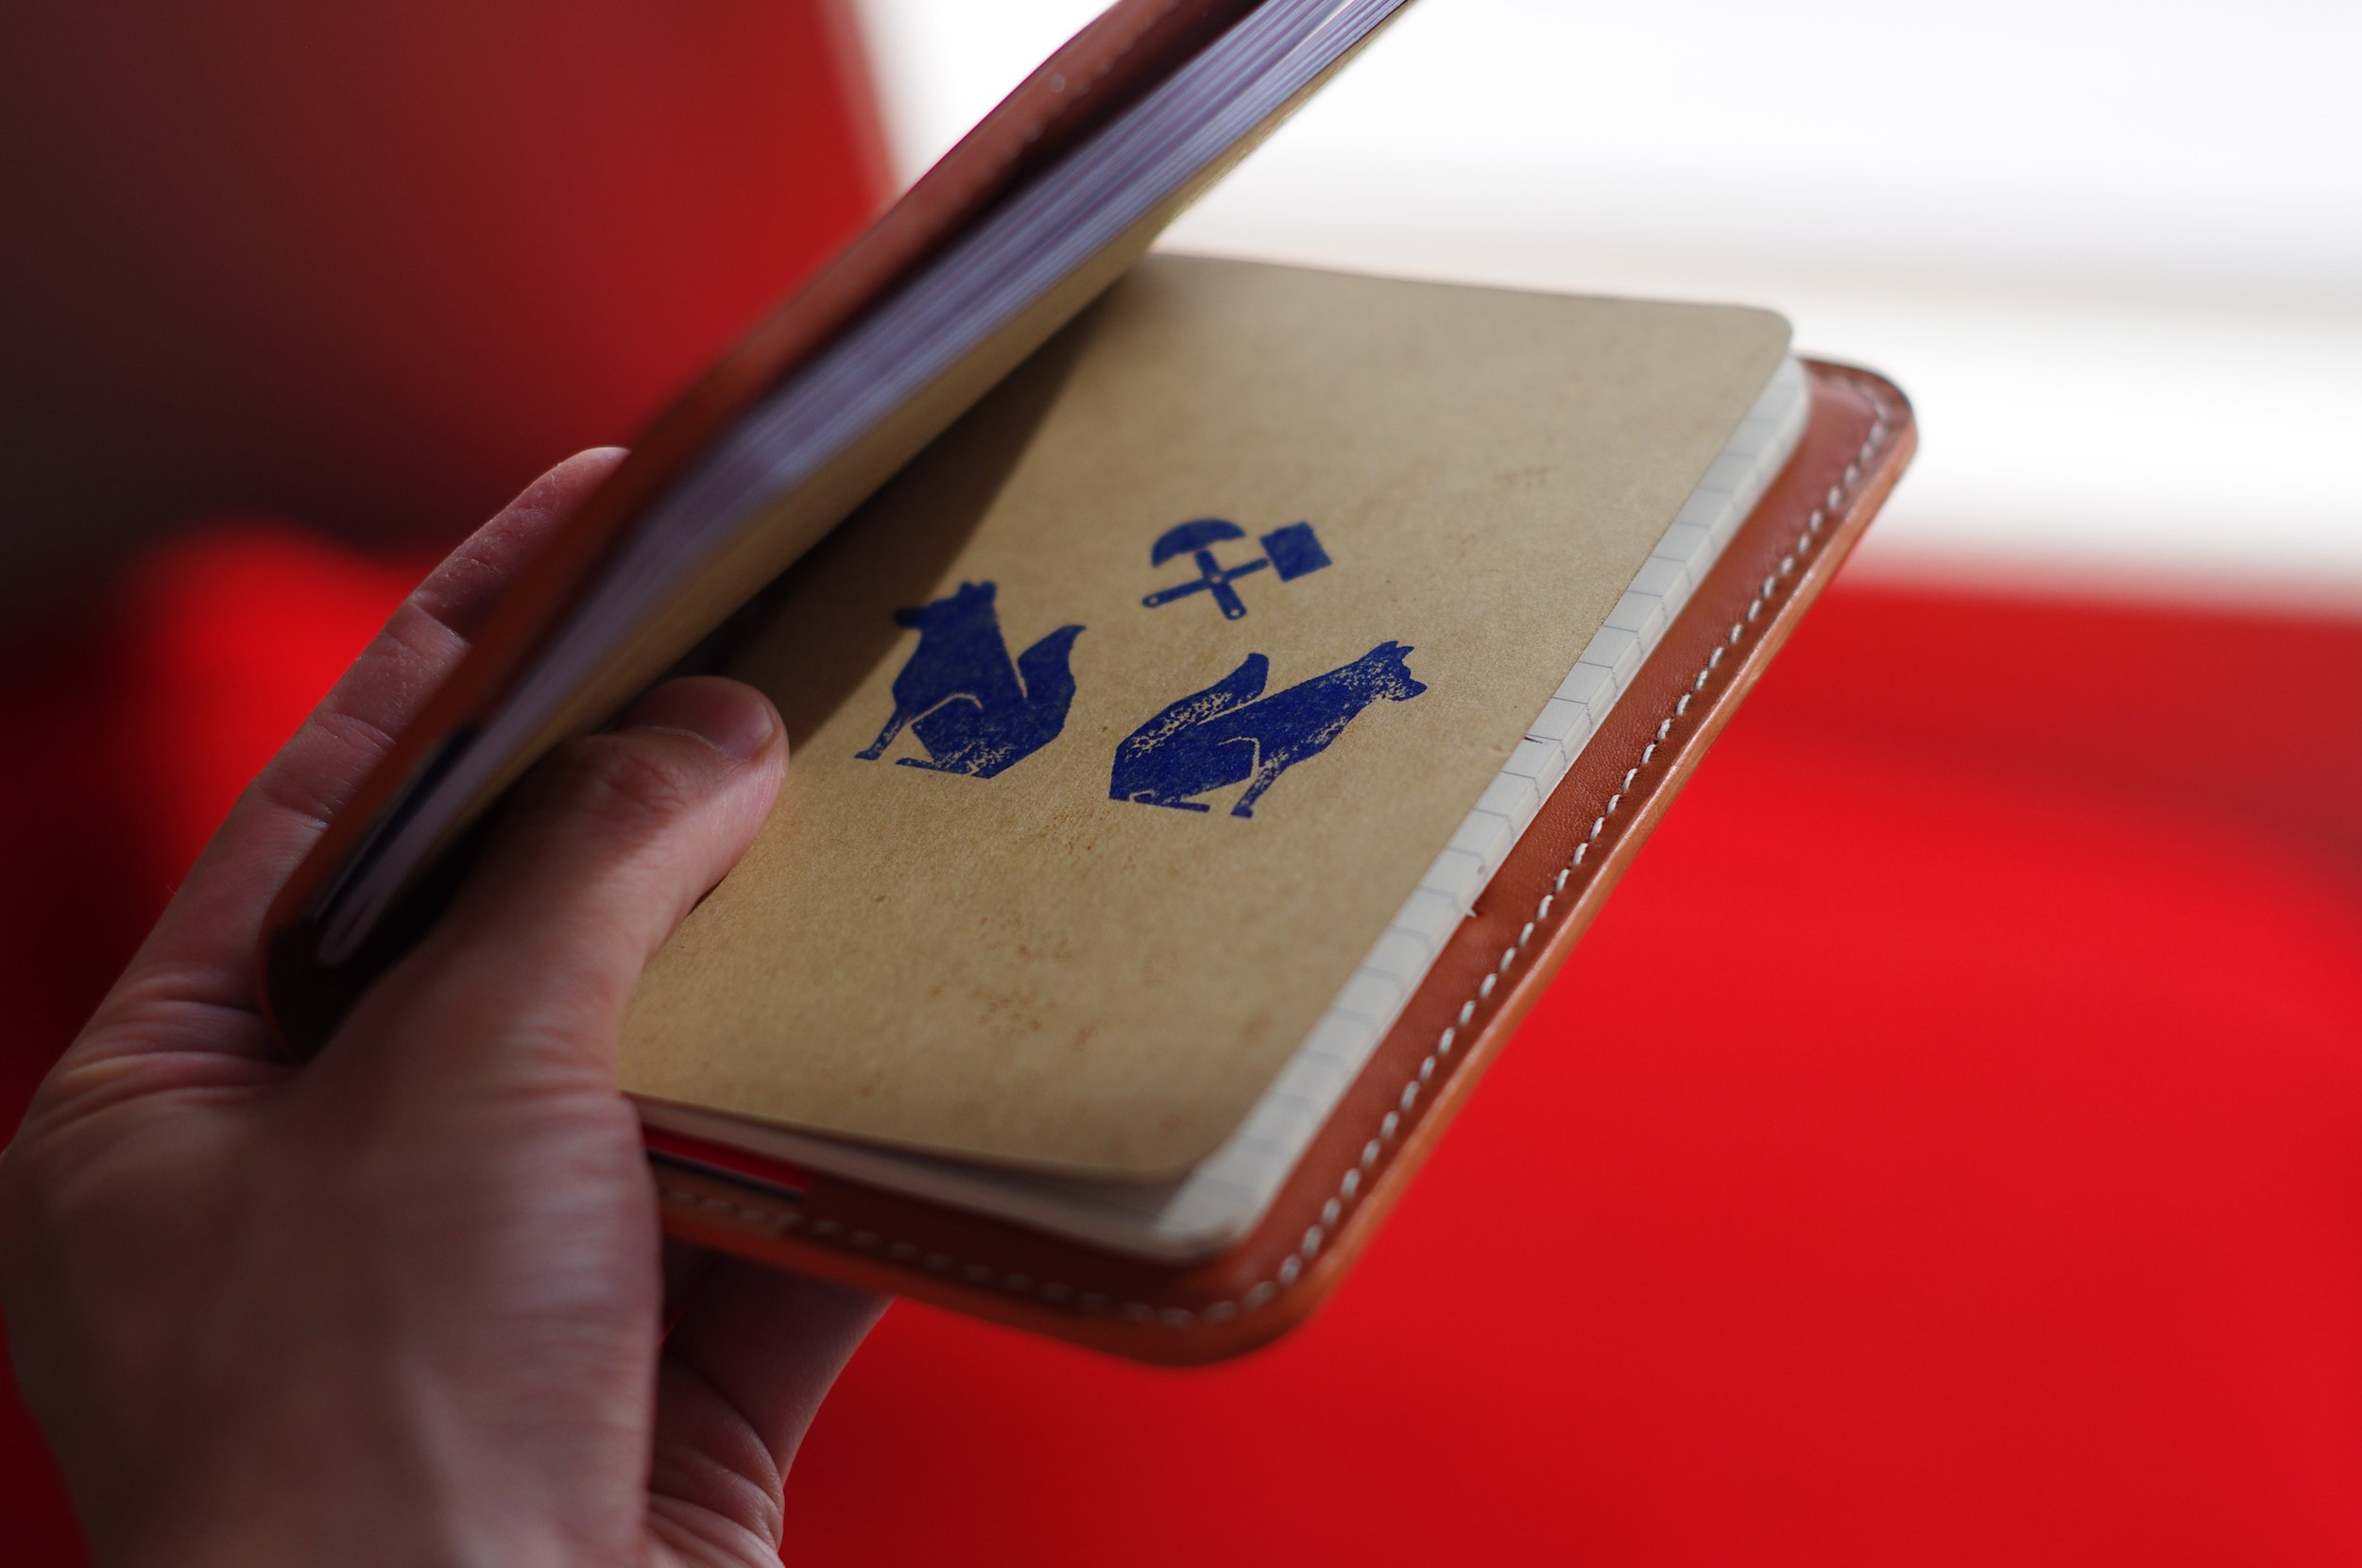 Moleskine Notebooks with our logo stamped